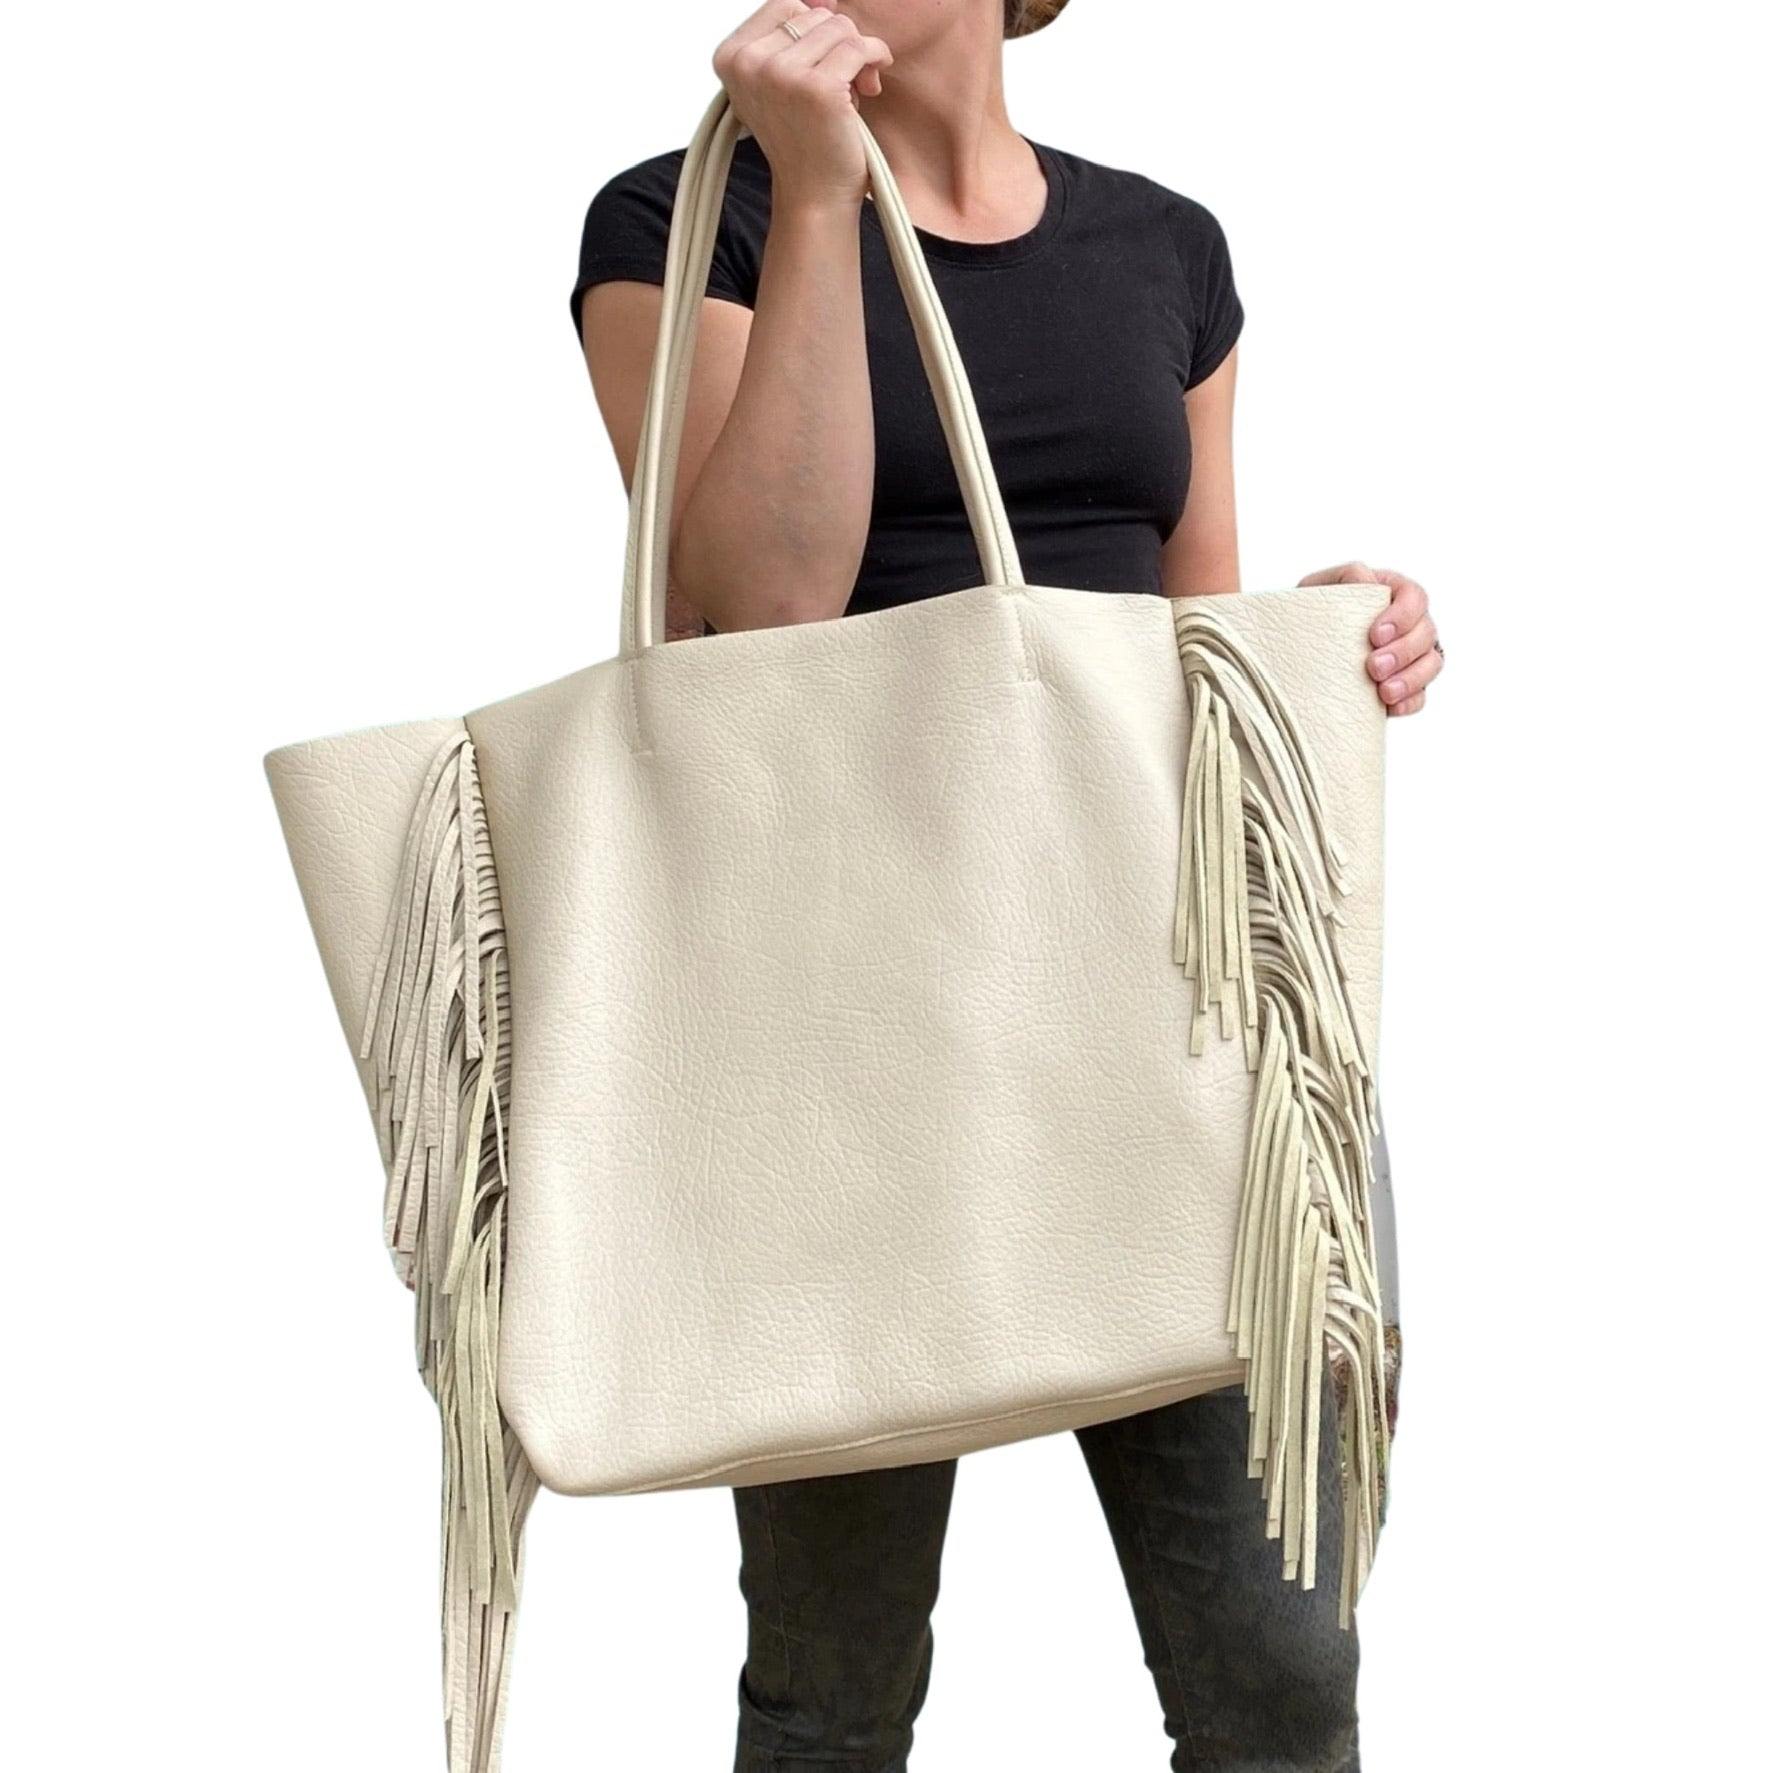 Handmade off white leather tote with side fringe